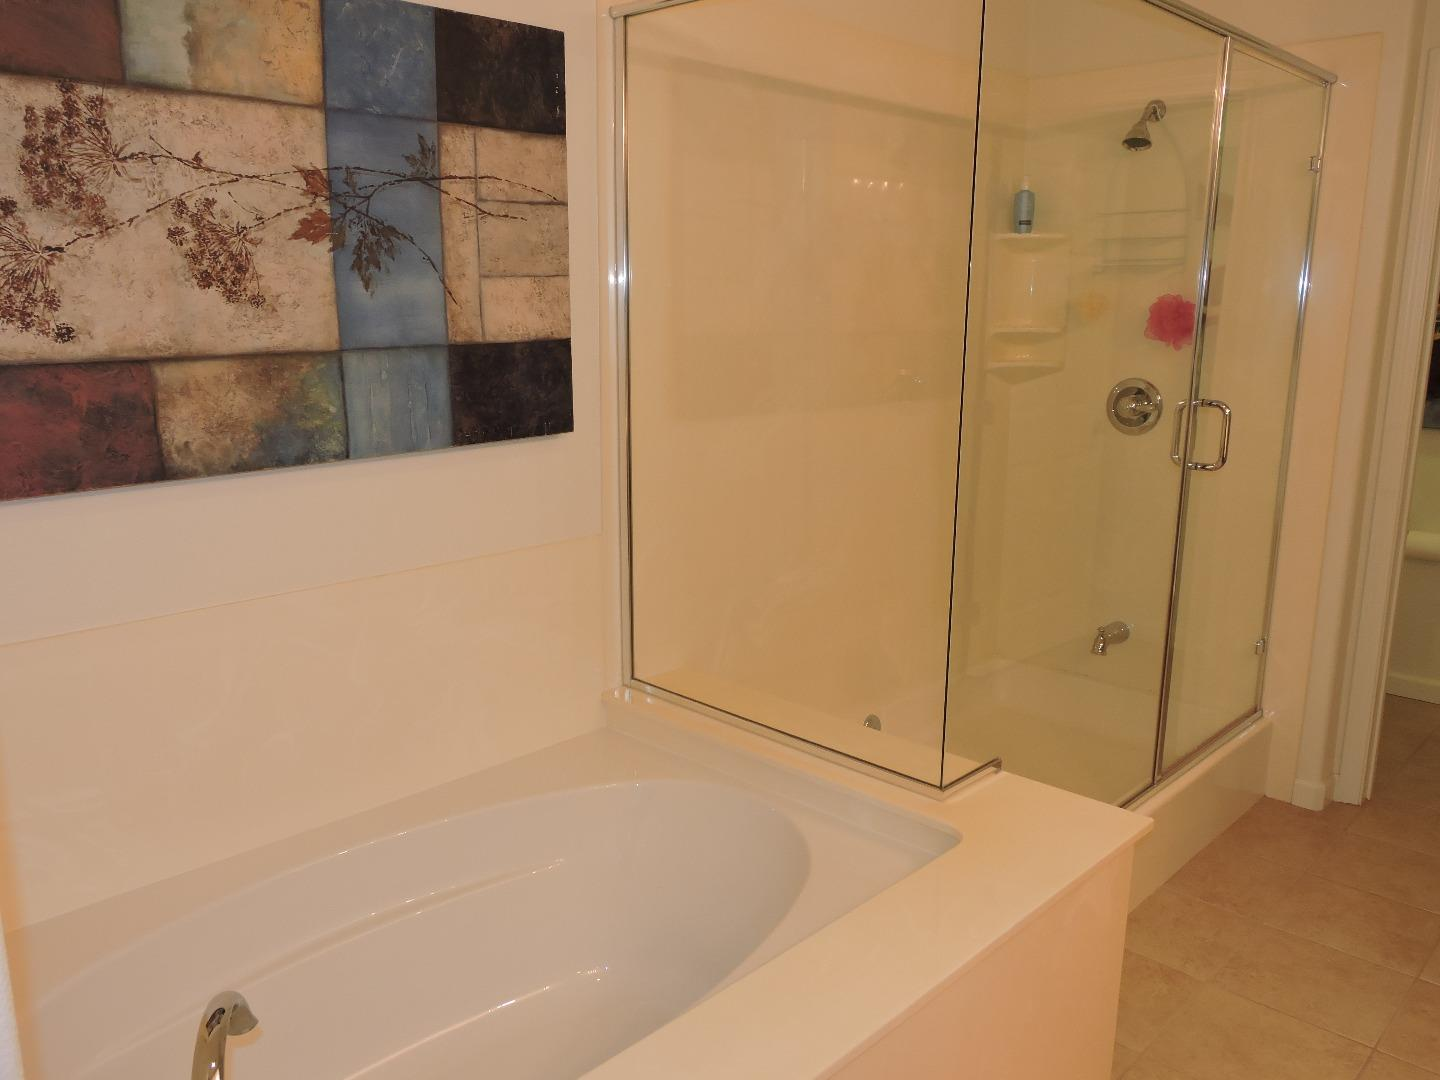 Additional photo for property listing at 800 S Abel 800 S Abel Milpitas, Kalifornien 95035 Vereinigte Staaten